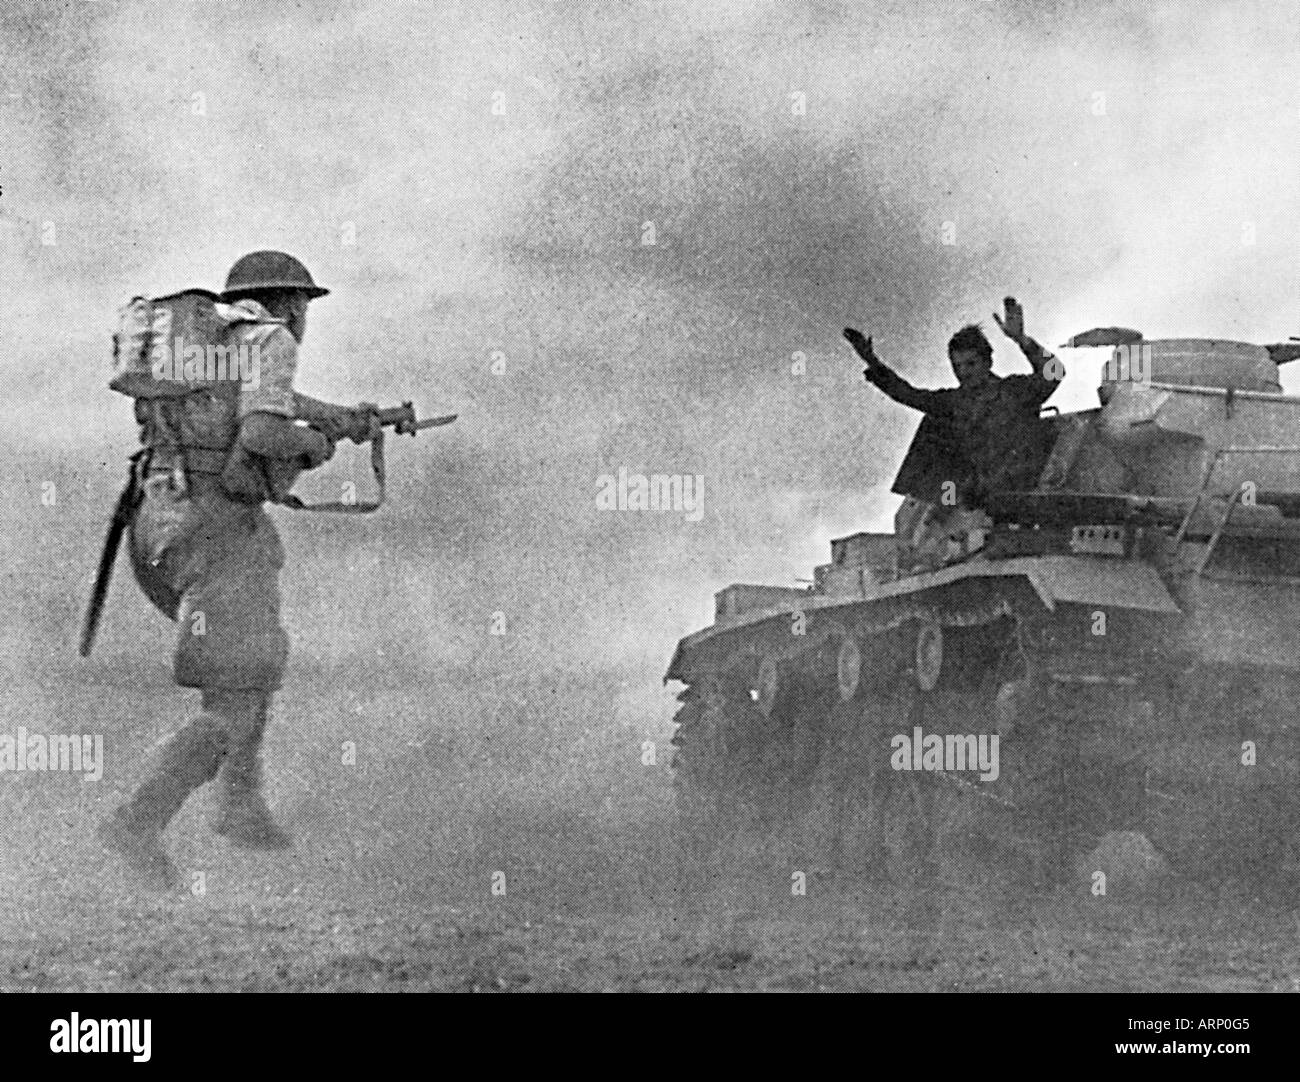 German Surrenders at El Alamein 1942 photo of the turning point in the Second World War in North Africa - Stock Image